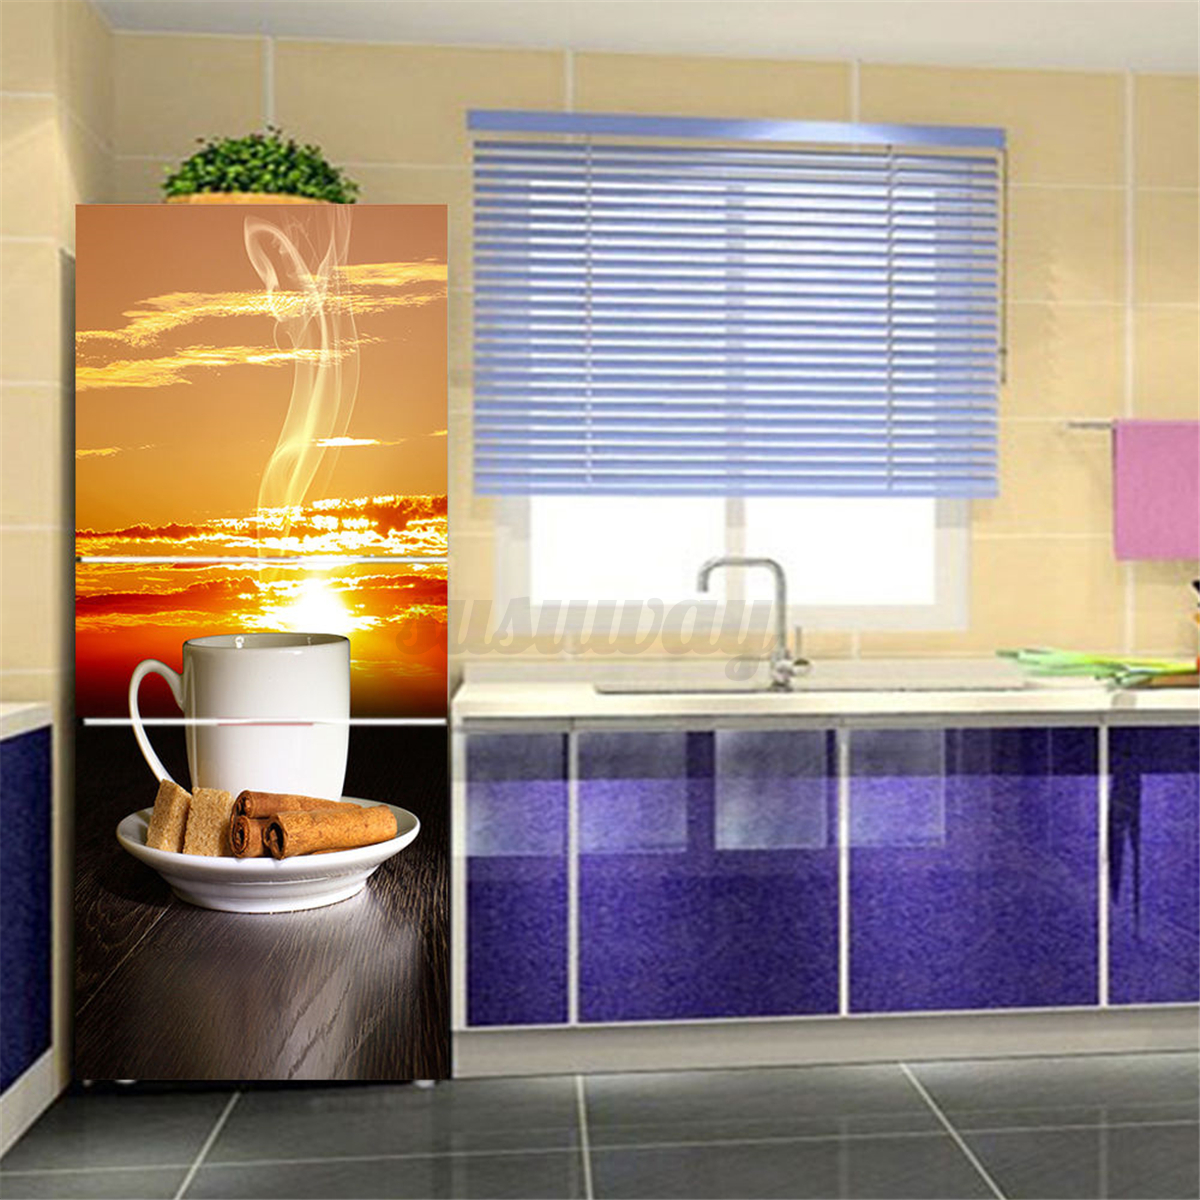 3d wall art sticker vinyl decal self adhesive door fridge for Diy photo wall mural